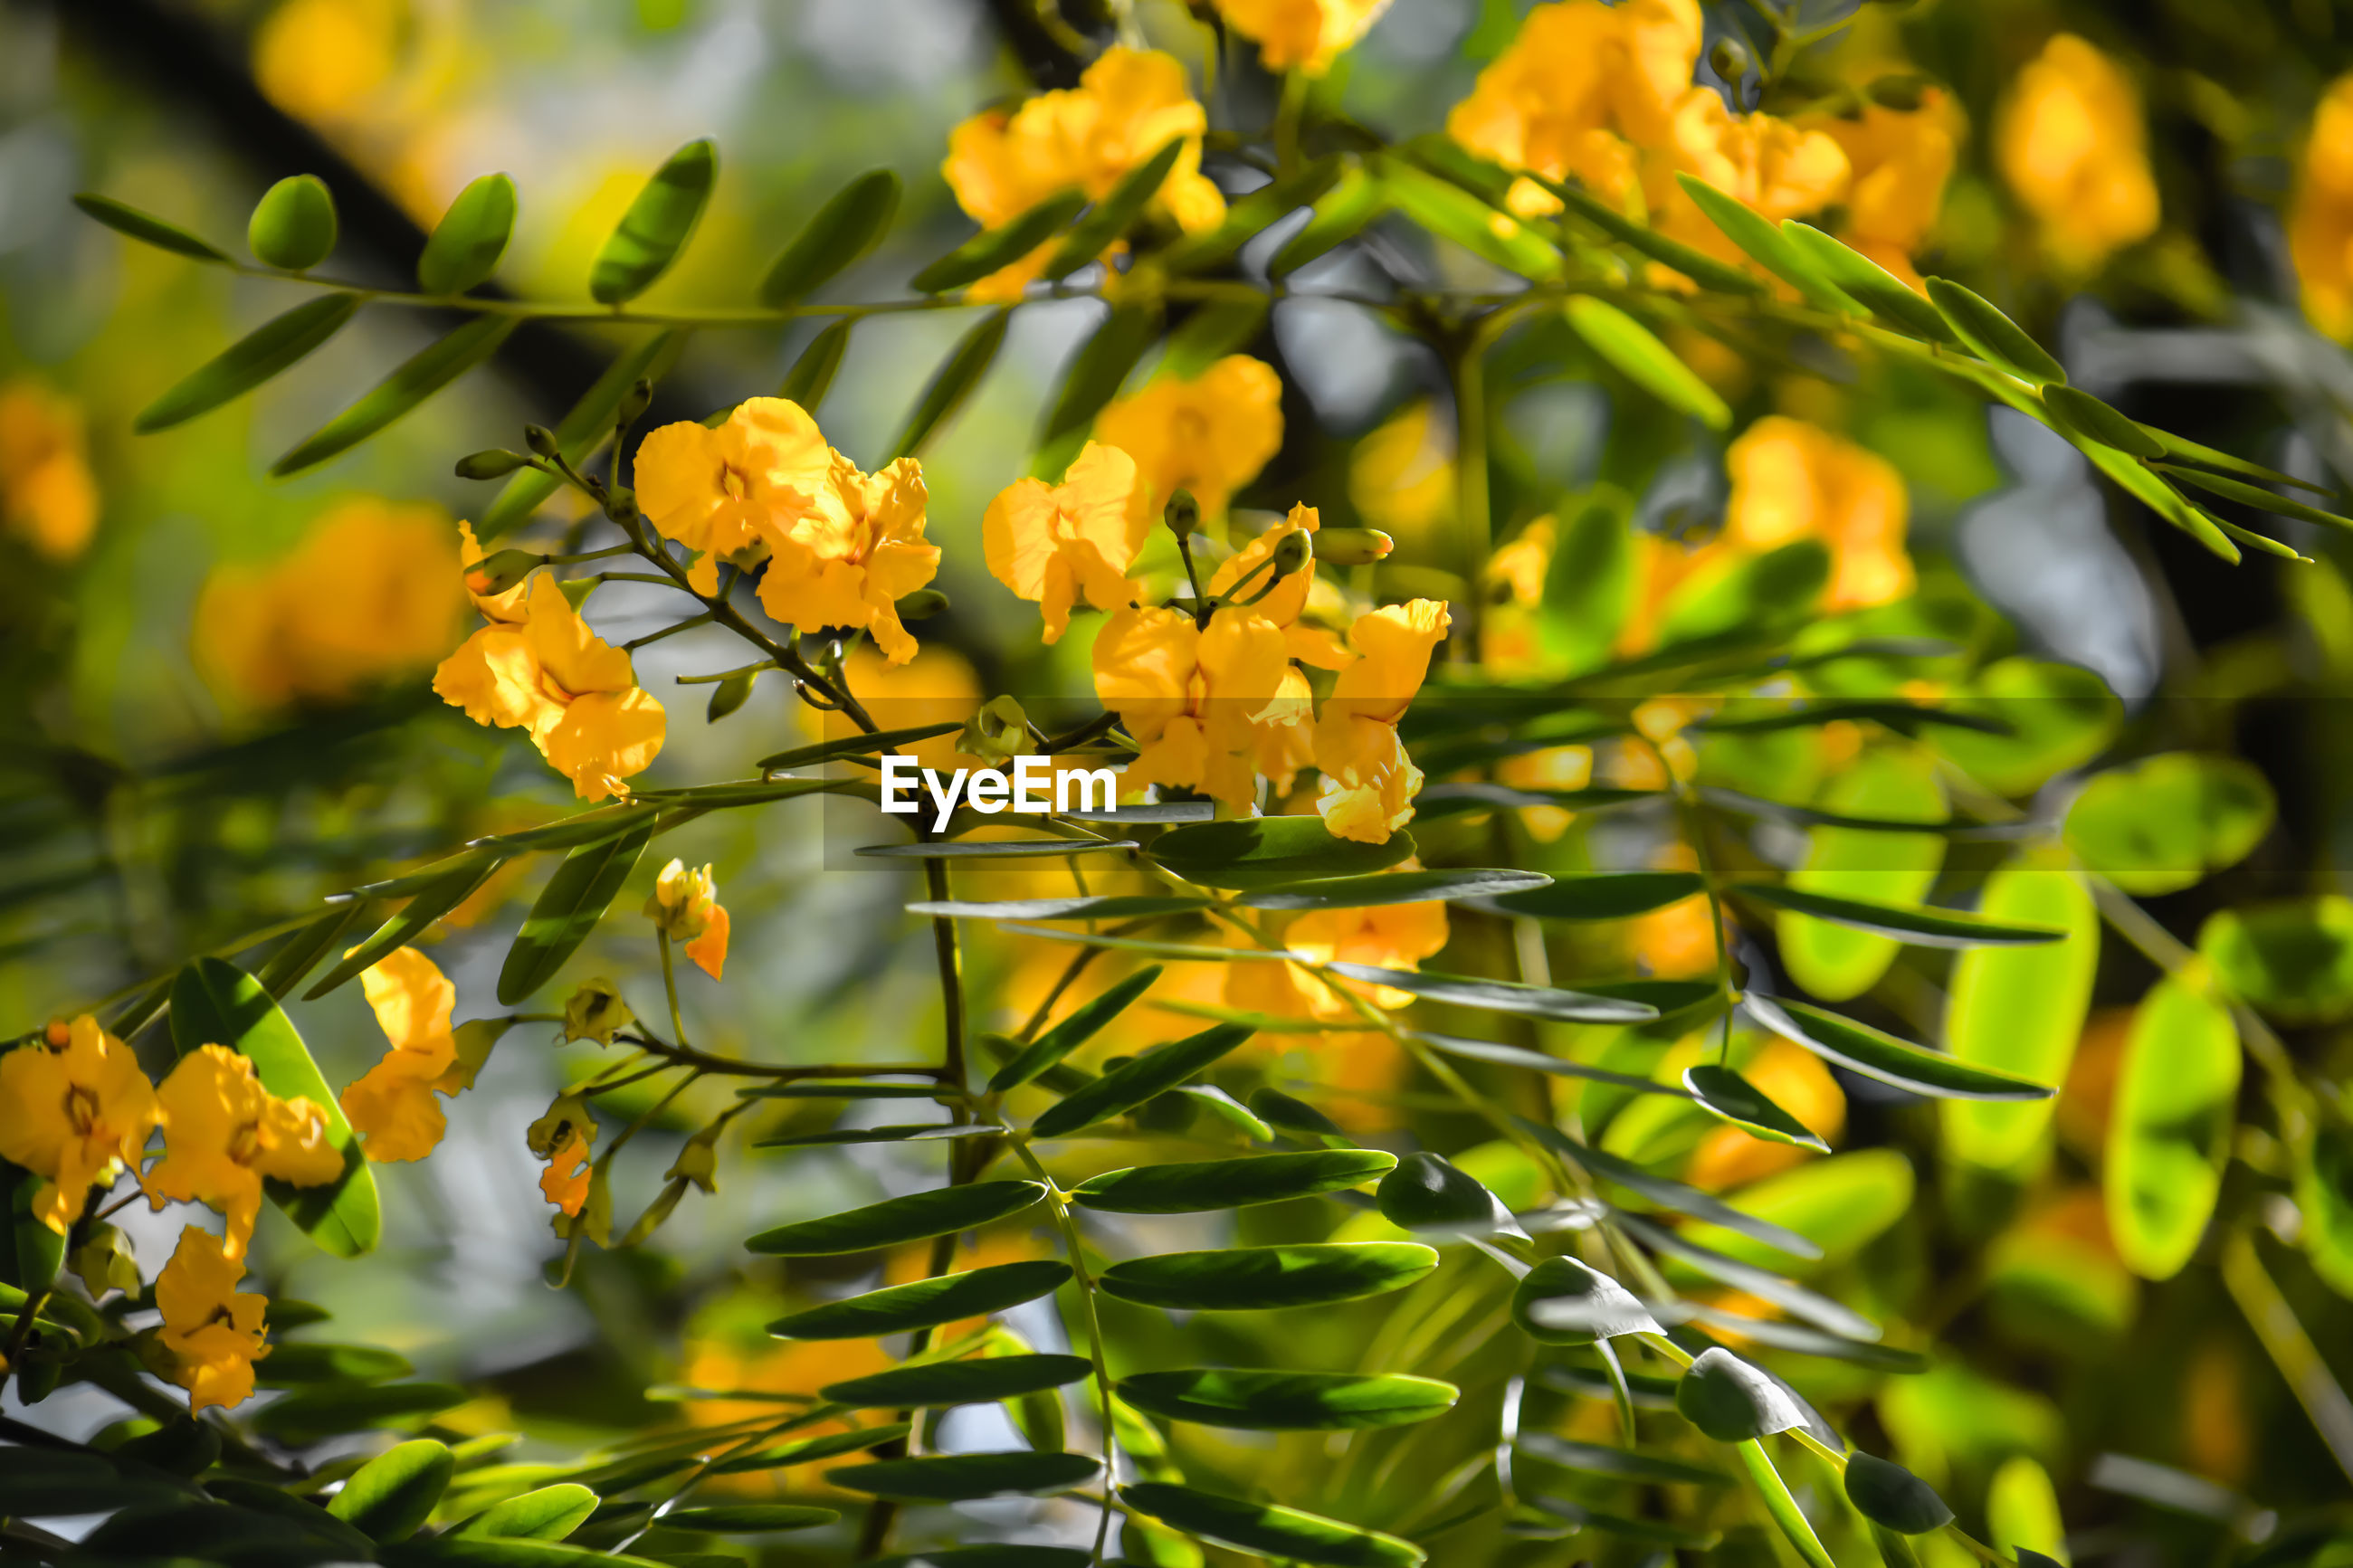 CLOSE-UP OF YELLOW FLOWERING PLANT AGAINST PLANTS